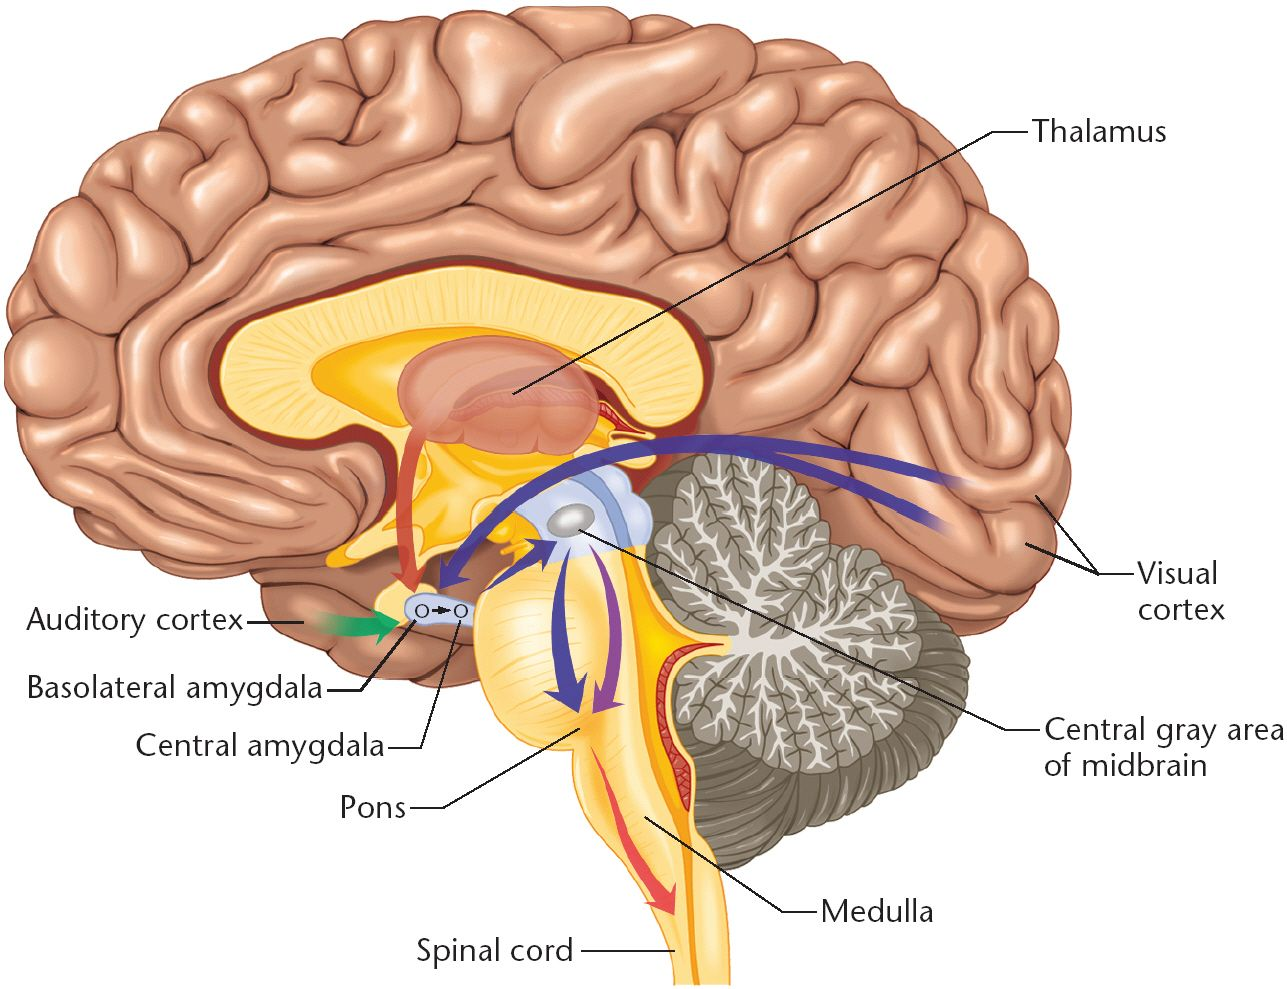 All parts of inside brain unlabeled diagram brain diagram labeled all parts of inside brain unlabeled diagram brain diagram labeled diagram of the brain wellnessarticles ccuart Image collections